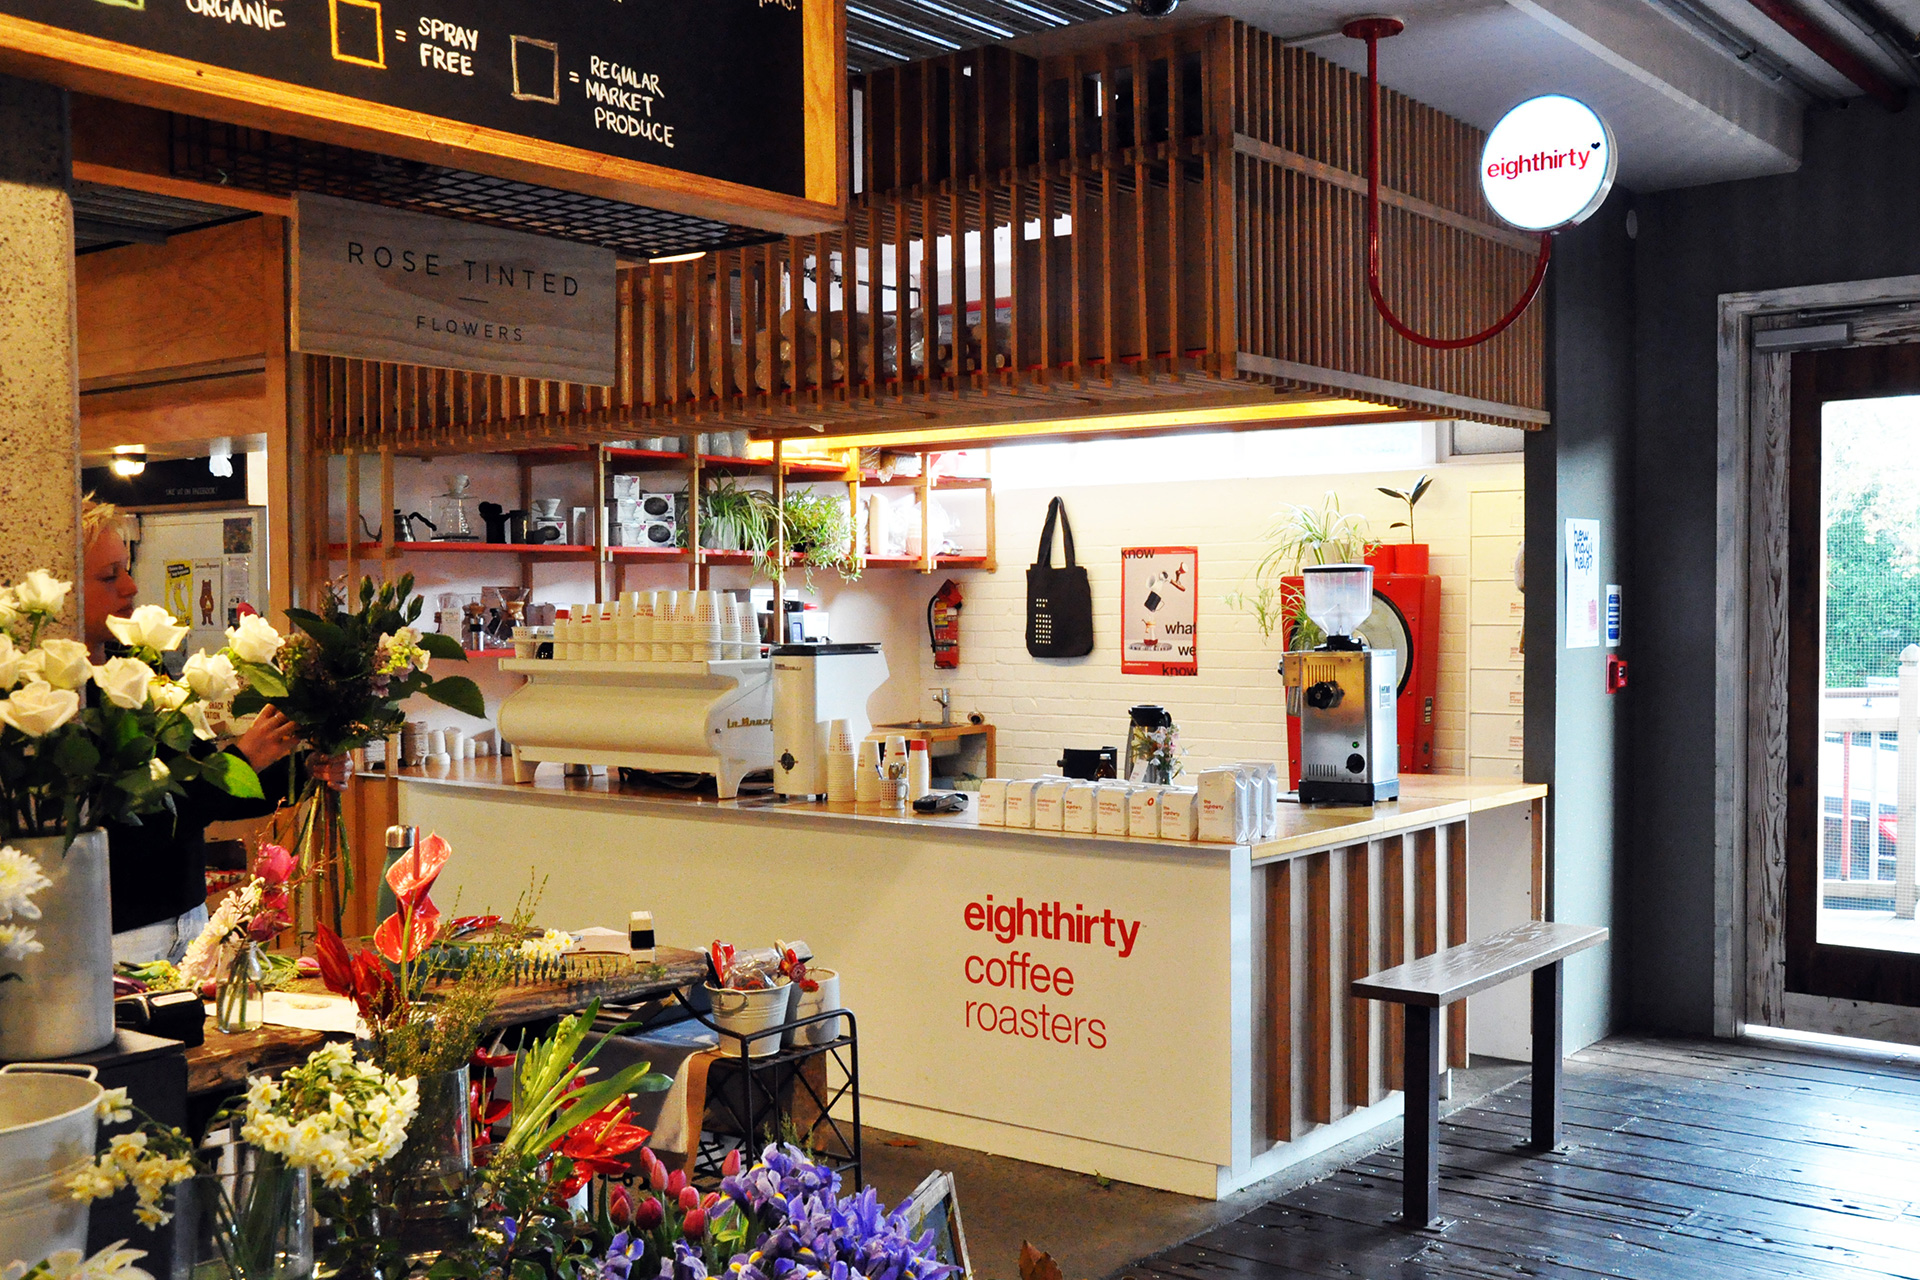 Eighthirty Coffee Roasters: Moving Auckland Beyond Traditional Tastes photo